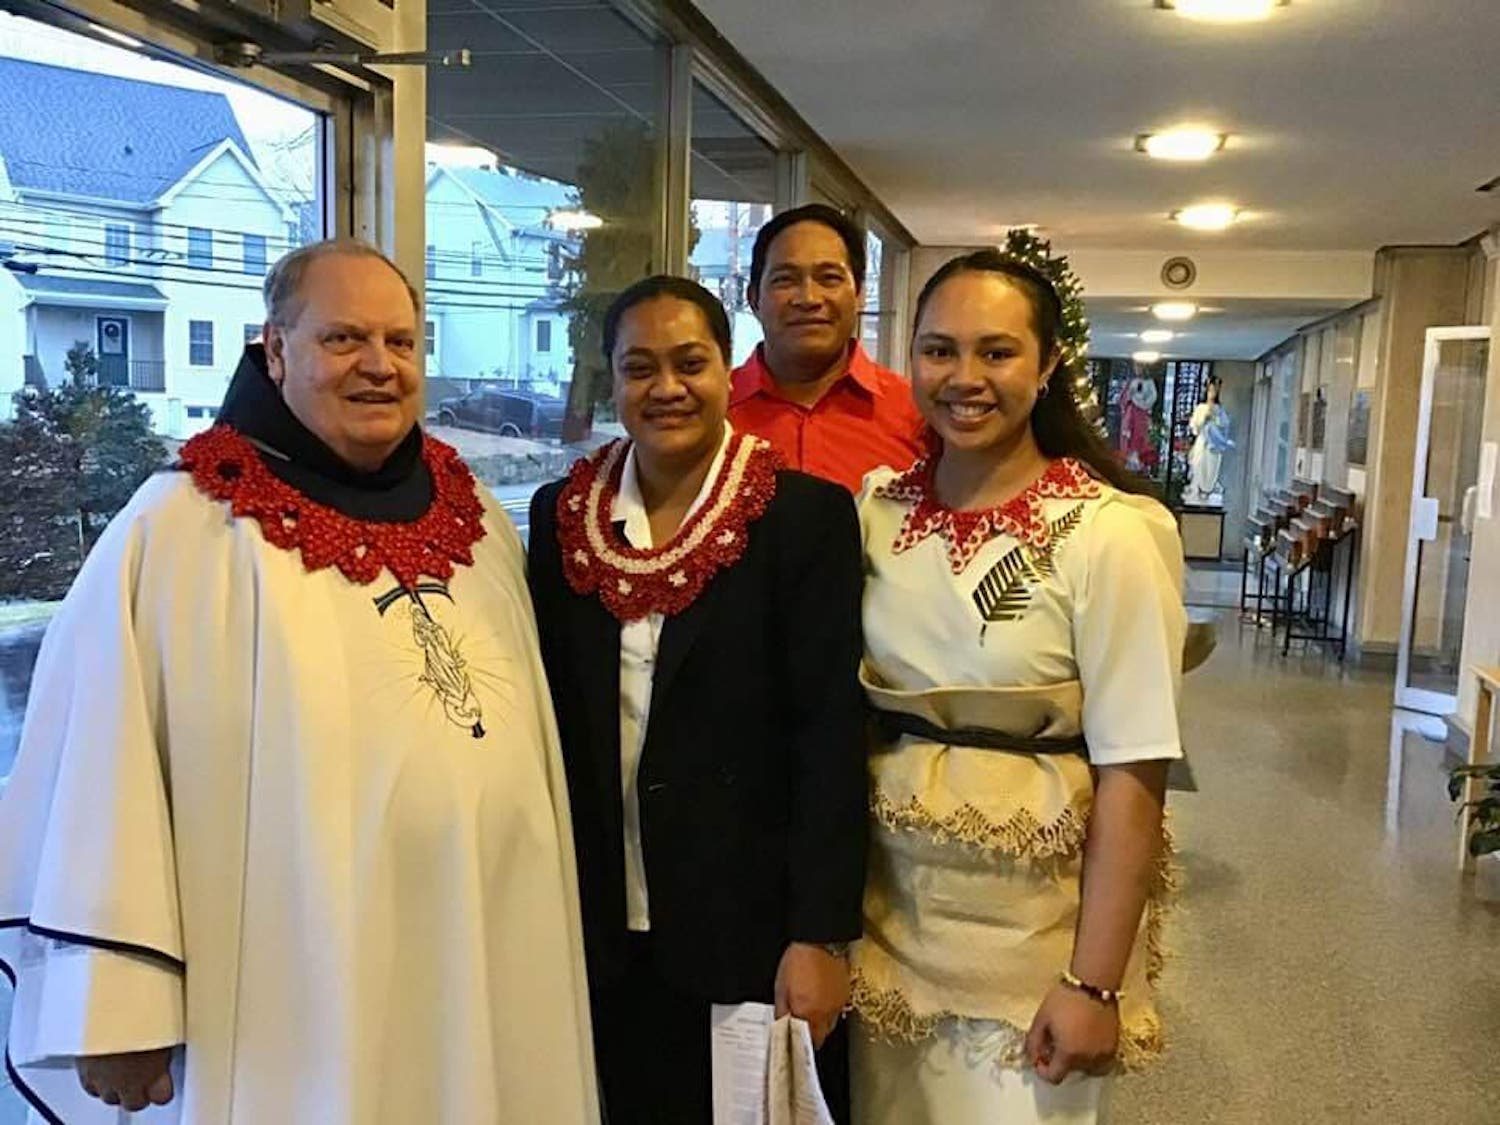 Before the Mass: Father Dennis Wheatley OFM, pastor, with Sister Senitila and Viliame and his daughter Tatila, who came from New Zealand.